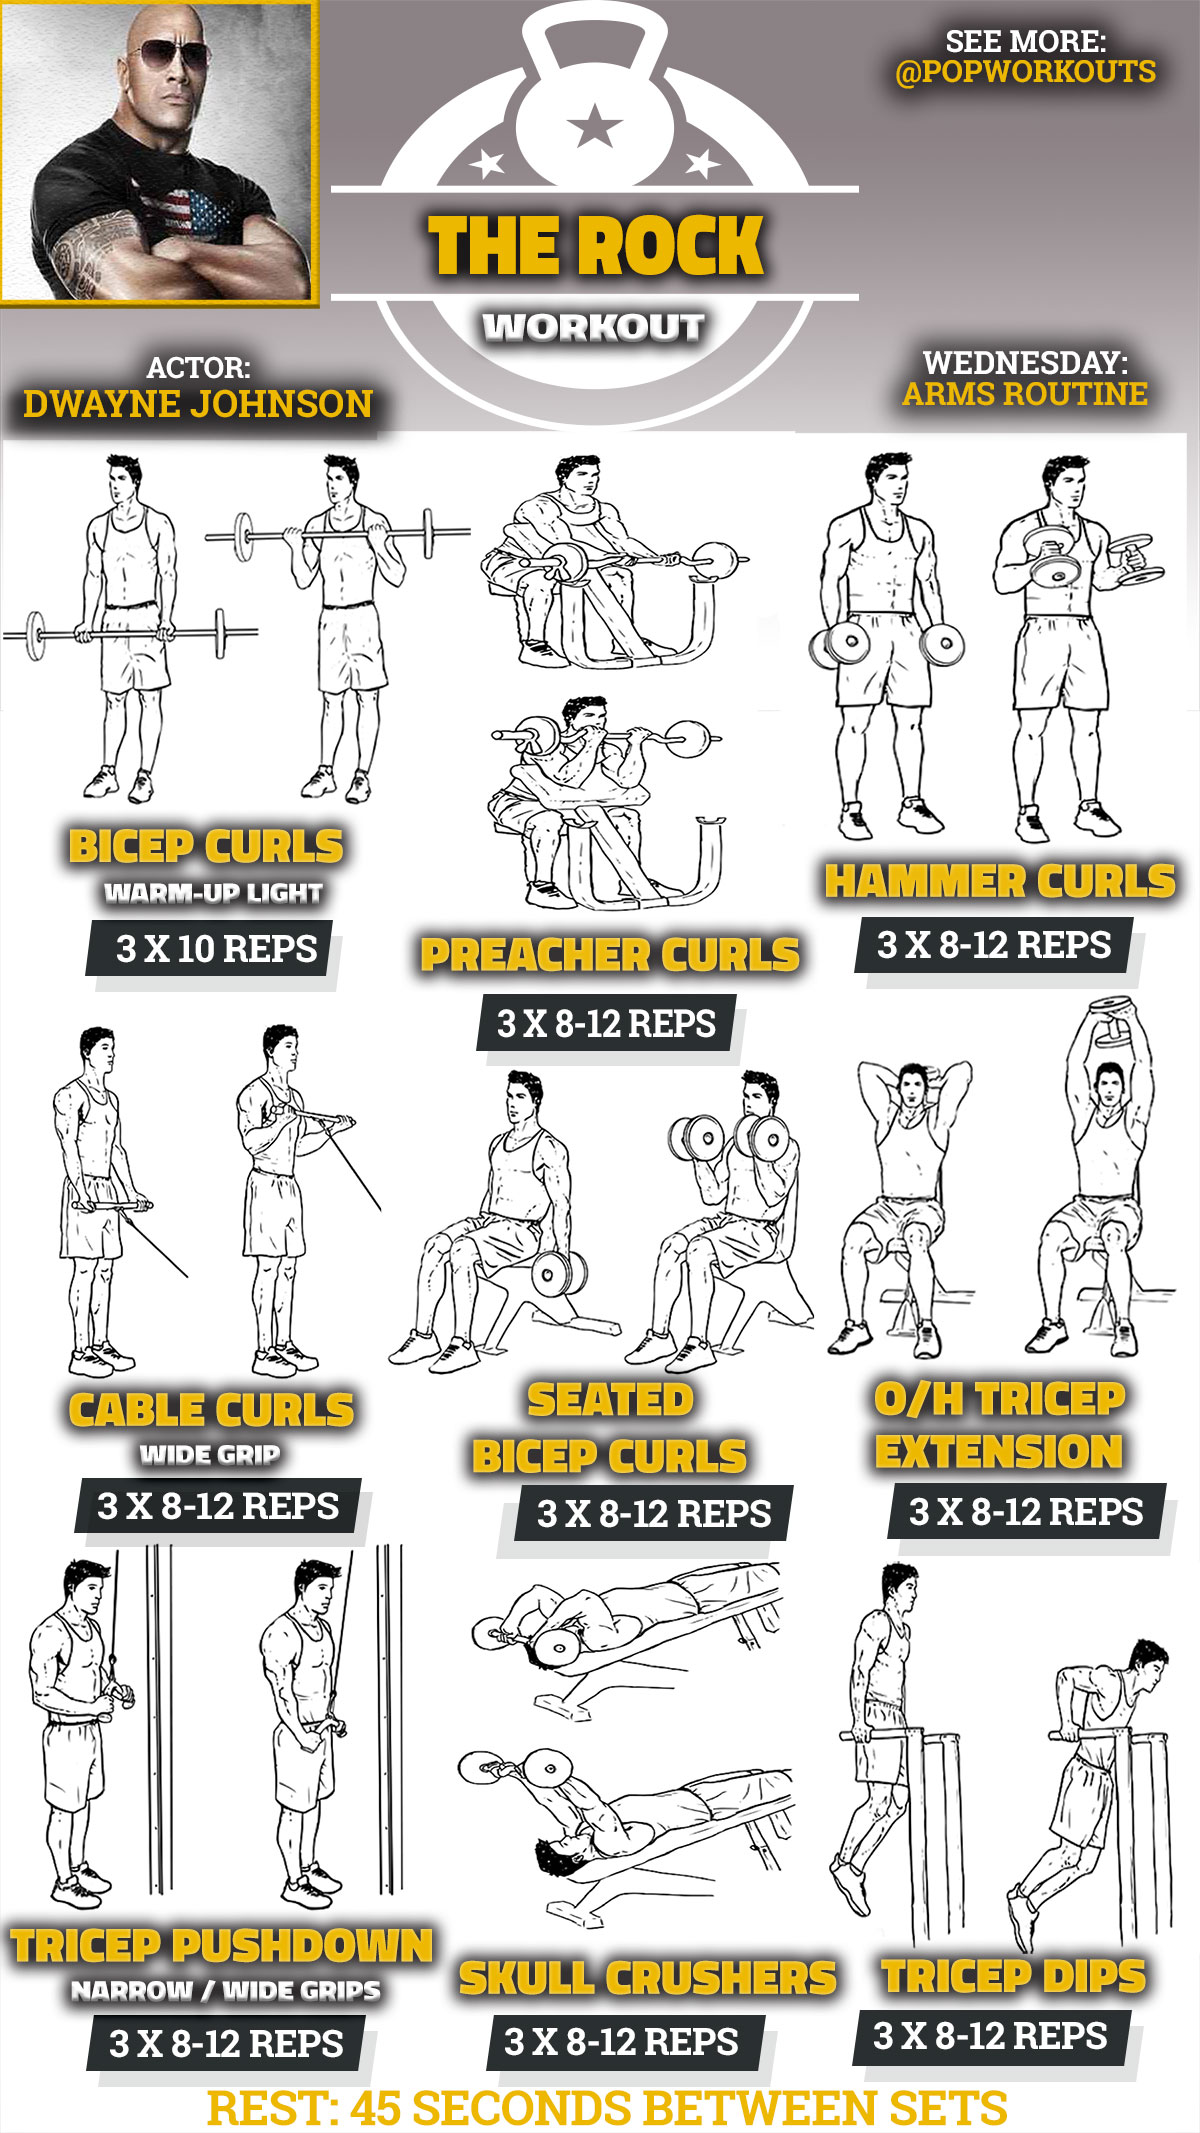 Biceps Triceps Suts May Not Be So Super